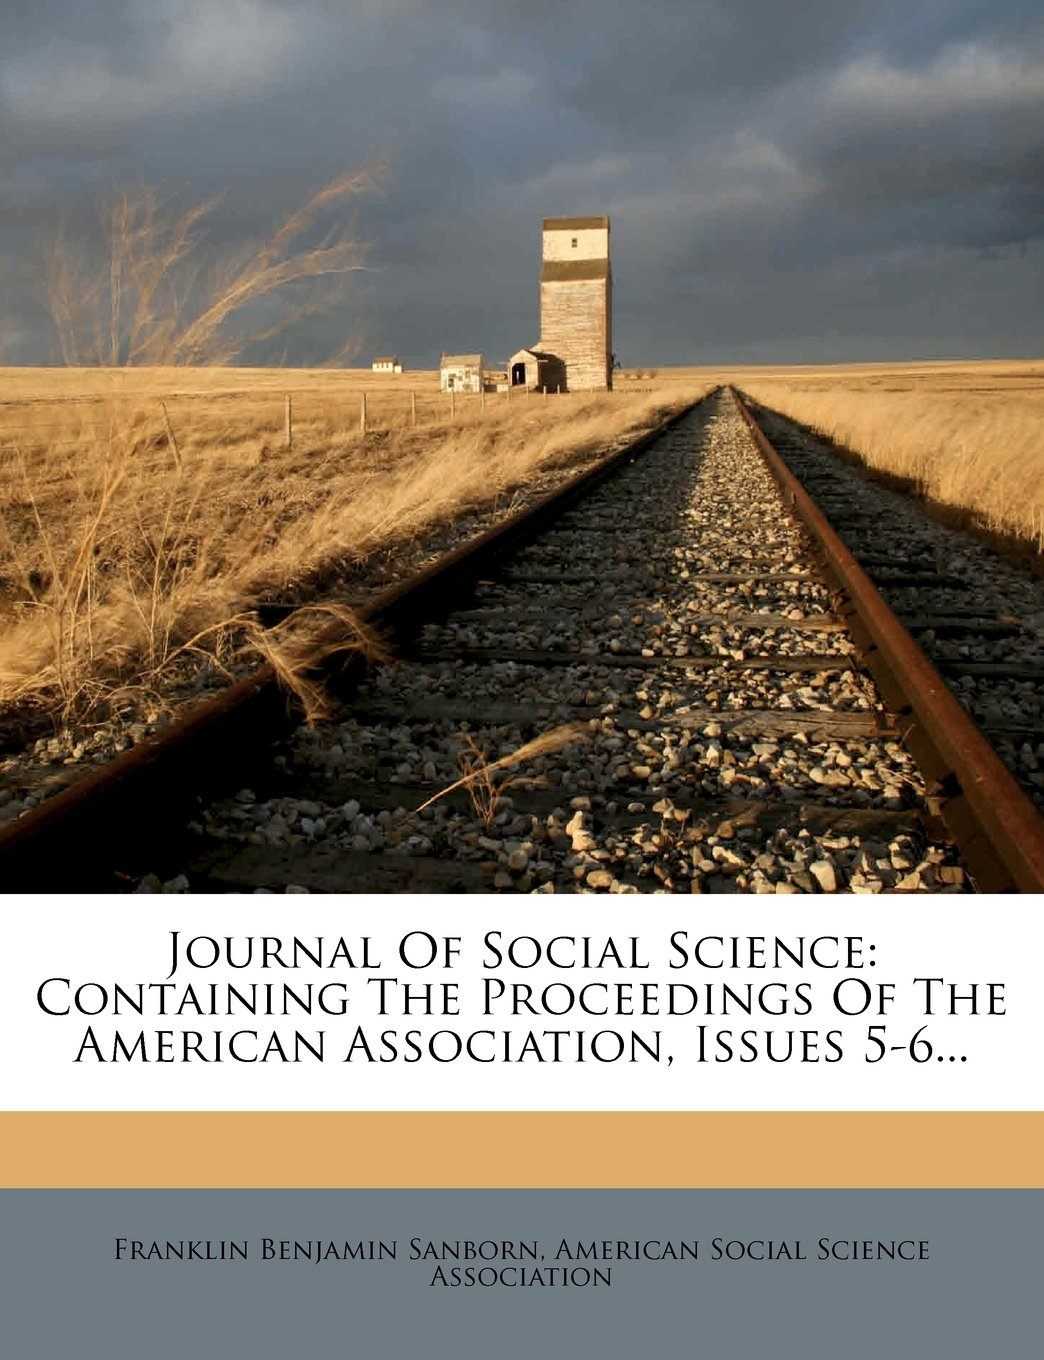 Journal Of Social Science: Containing The Proceedings Of The American Association, Issues 5-6... PDF